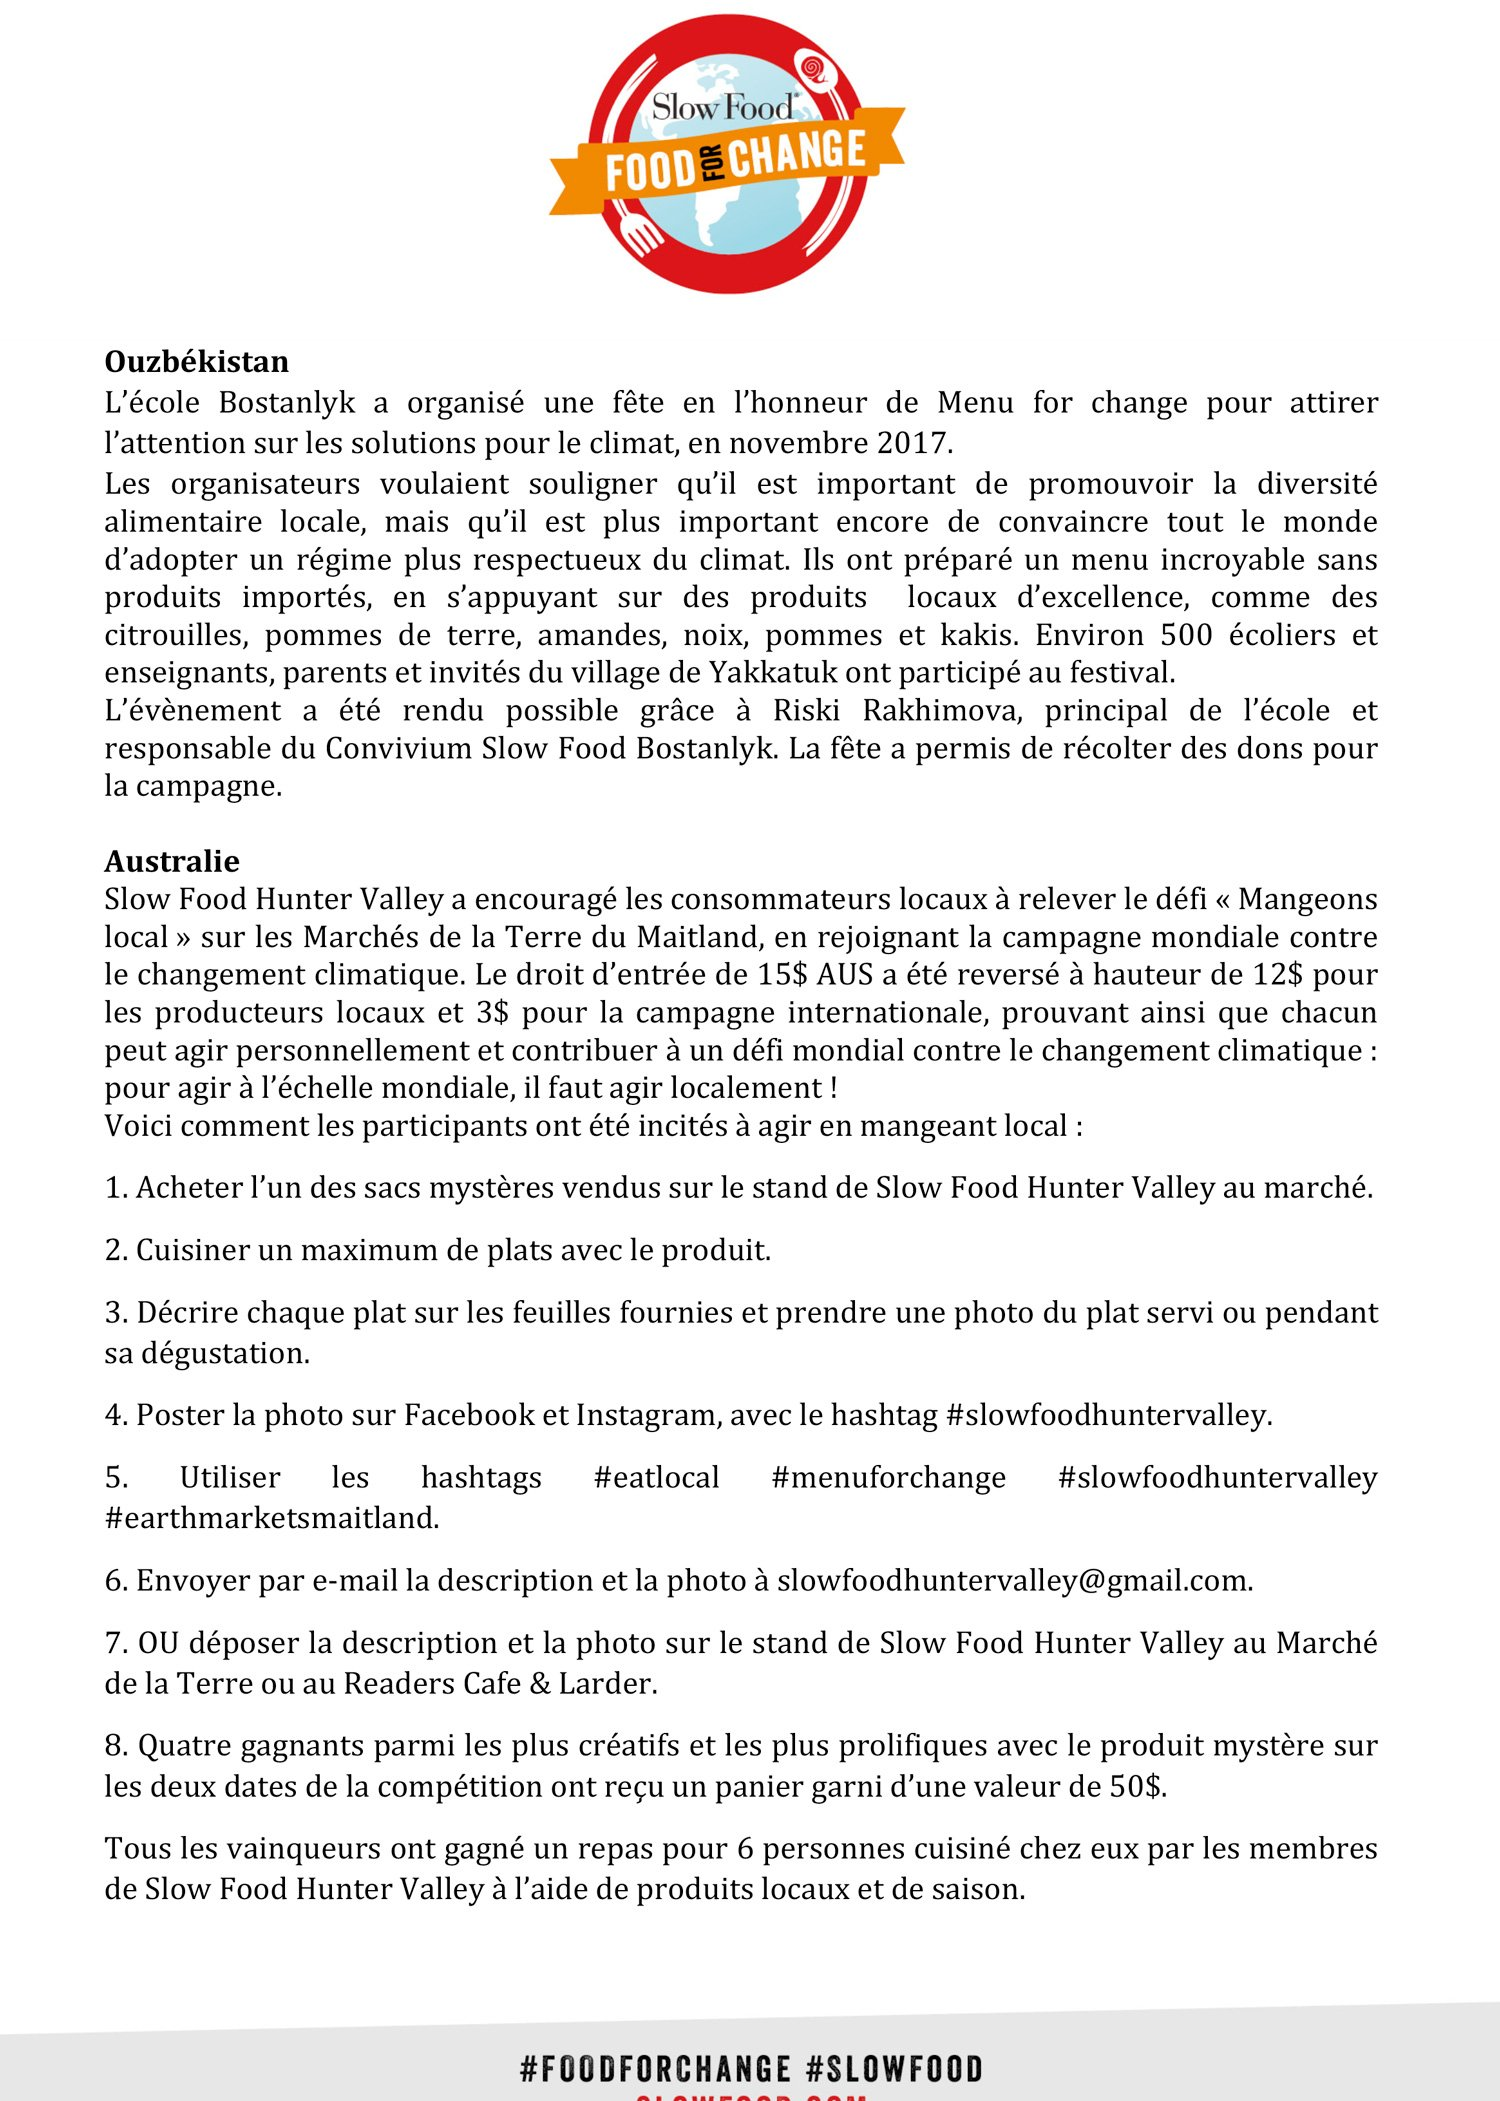 slowfood-campagne-slow-food-climat-alimentation-food-for-change-5-1500x2101